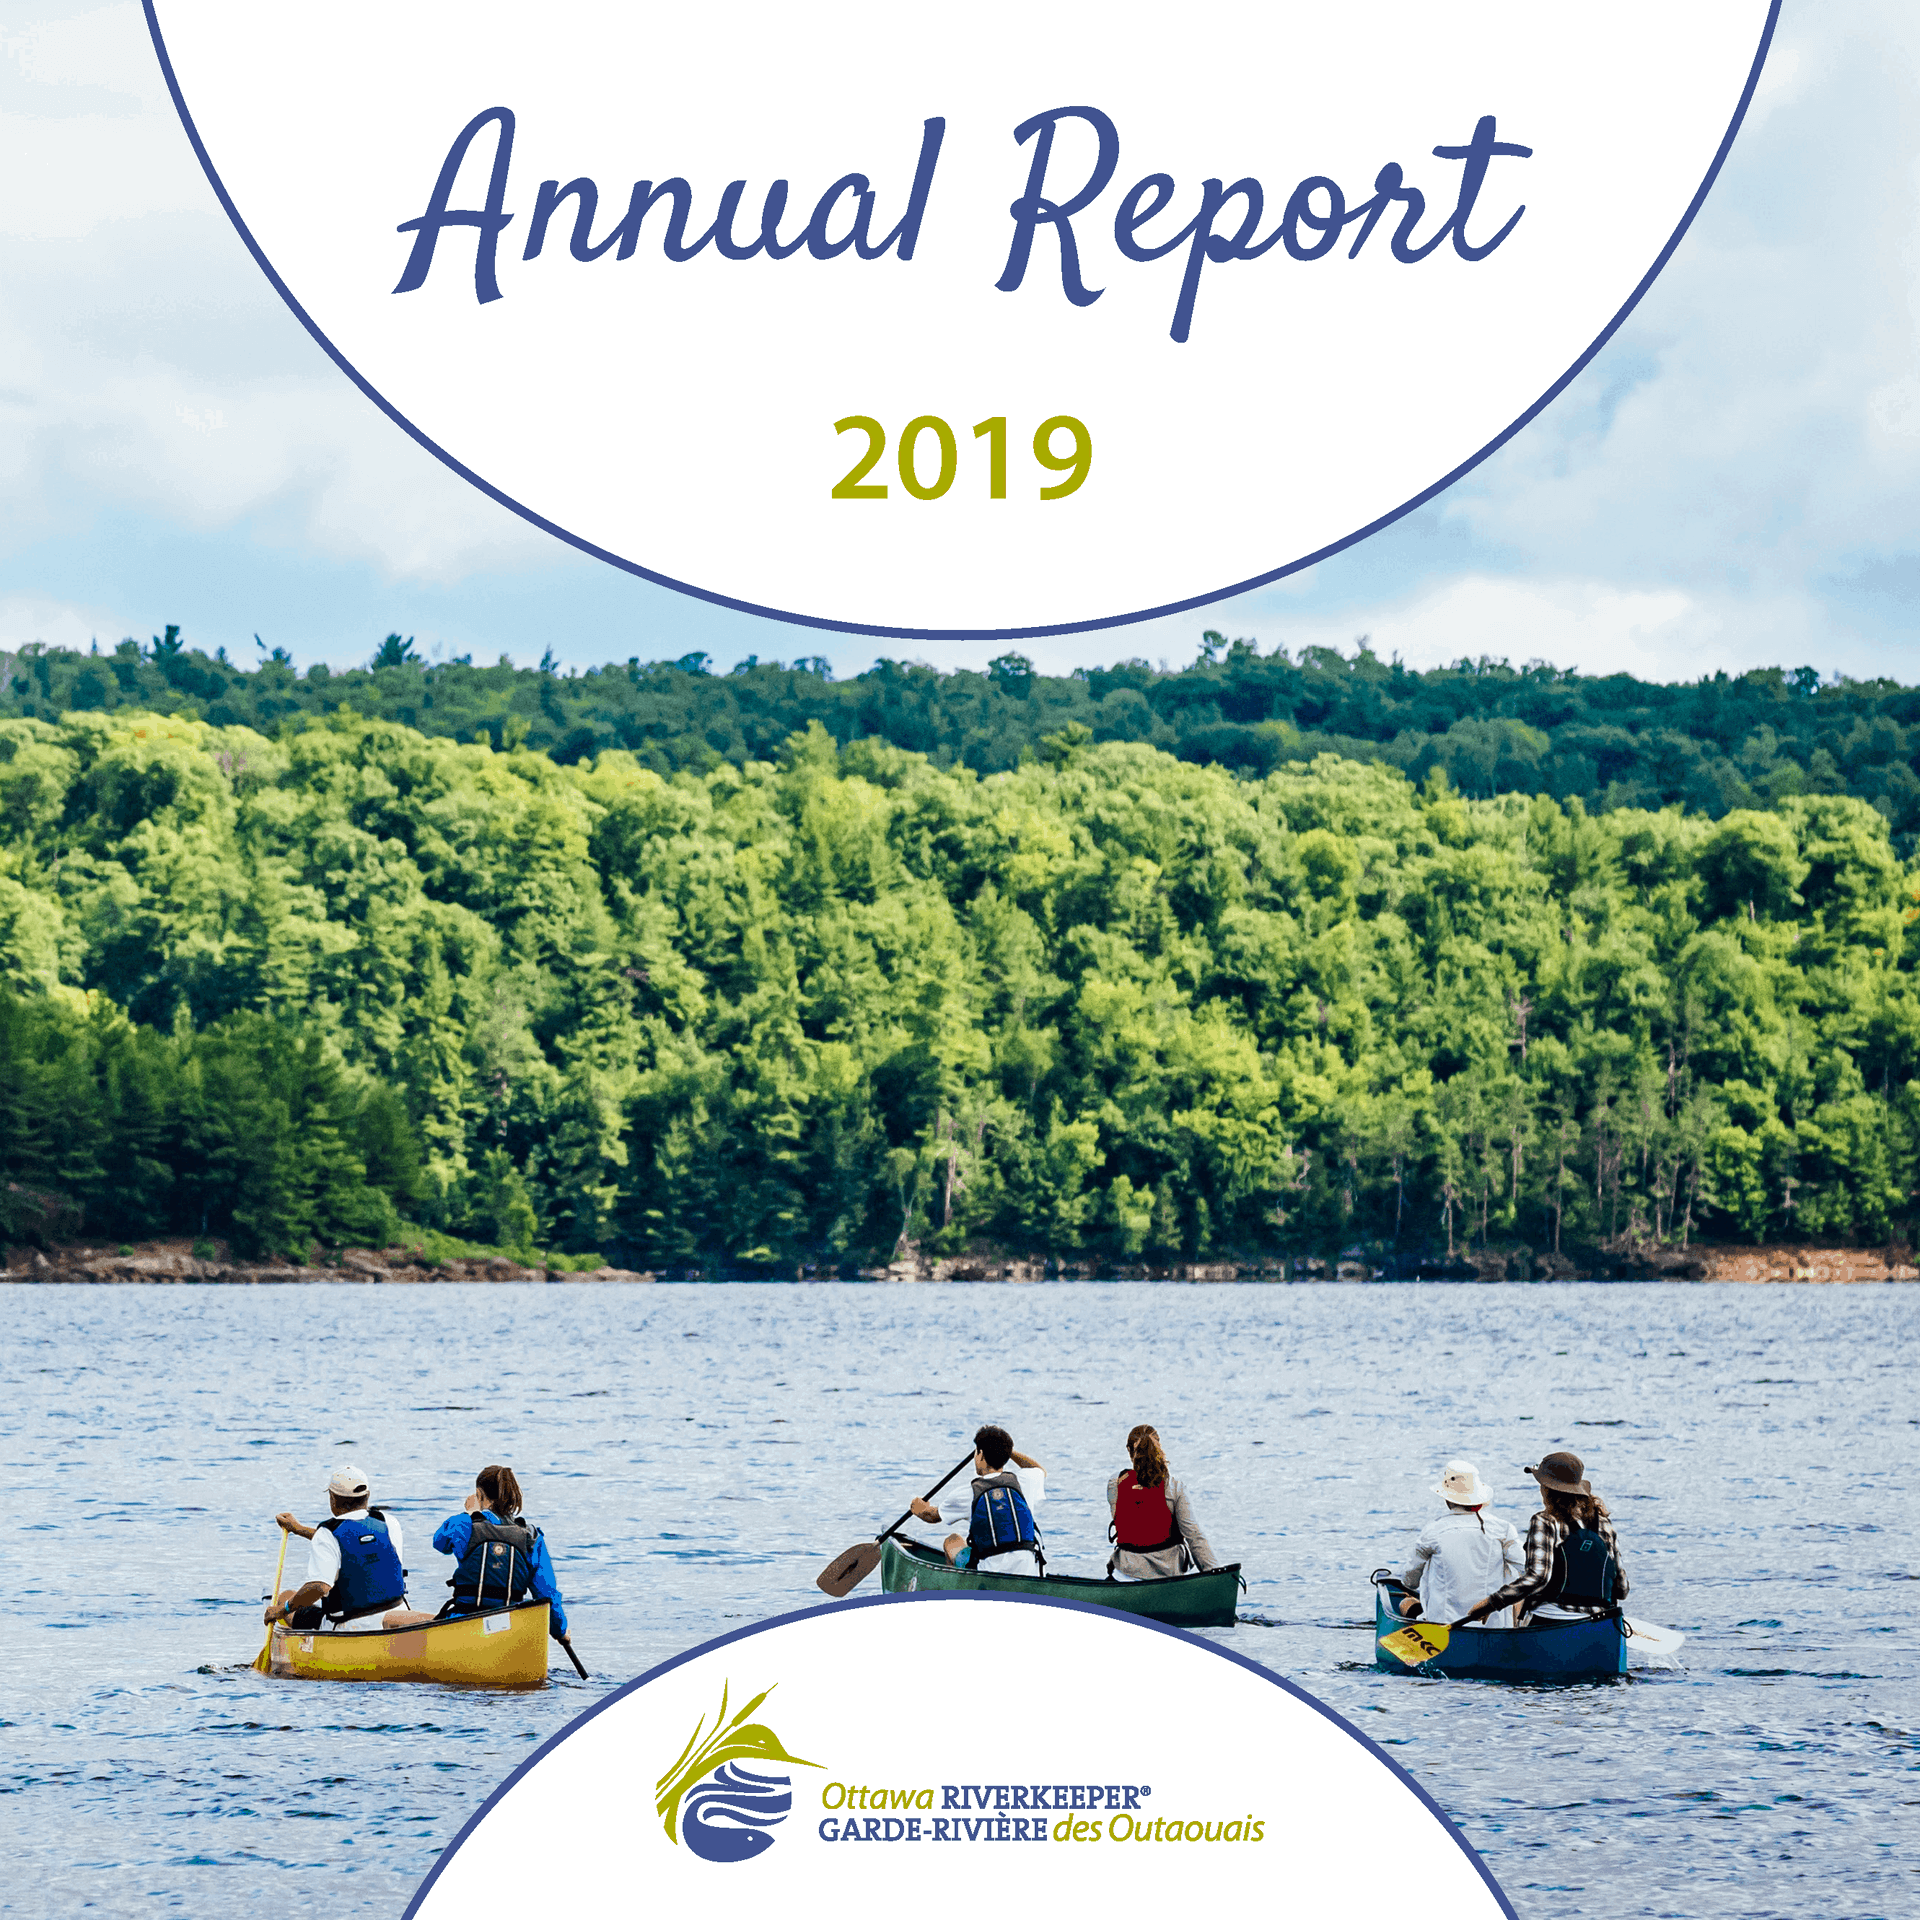 Our 2019 Annual Report is now available!